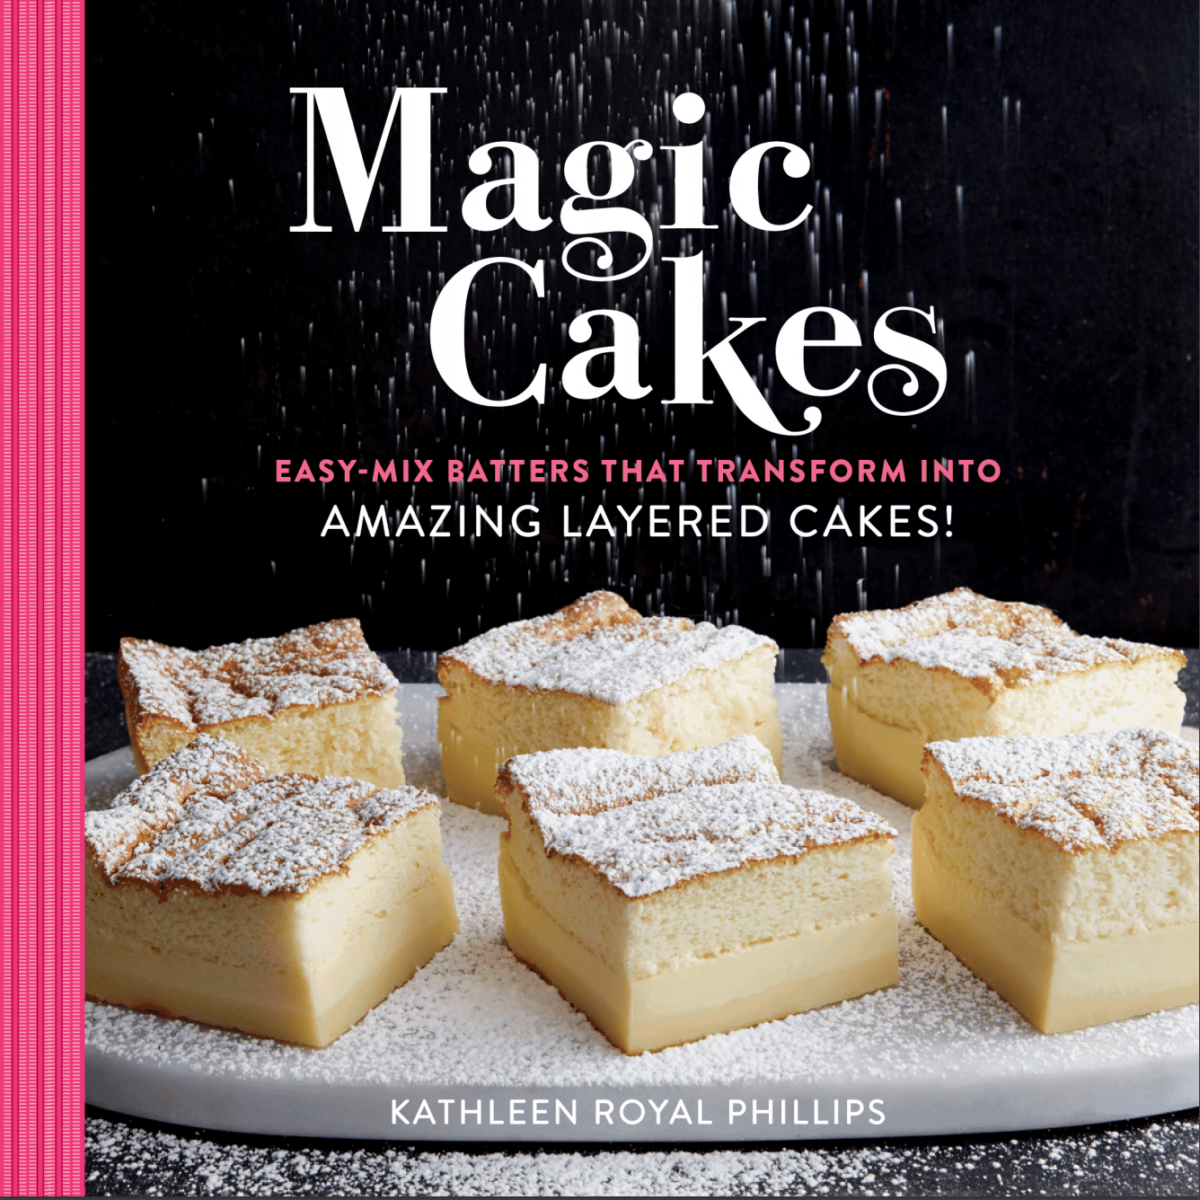 Cover of Magic Cakes cookbook with squares of powdered sugar dusted custard cakes